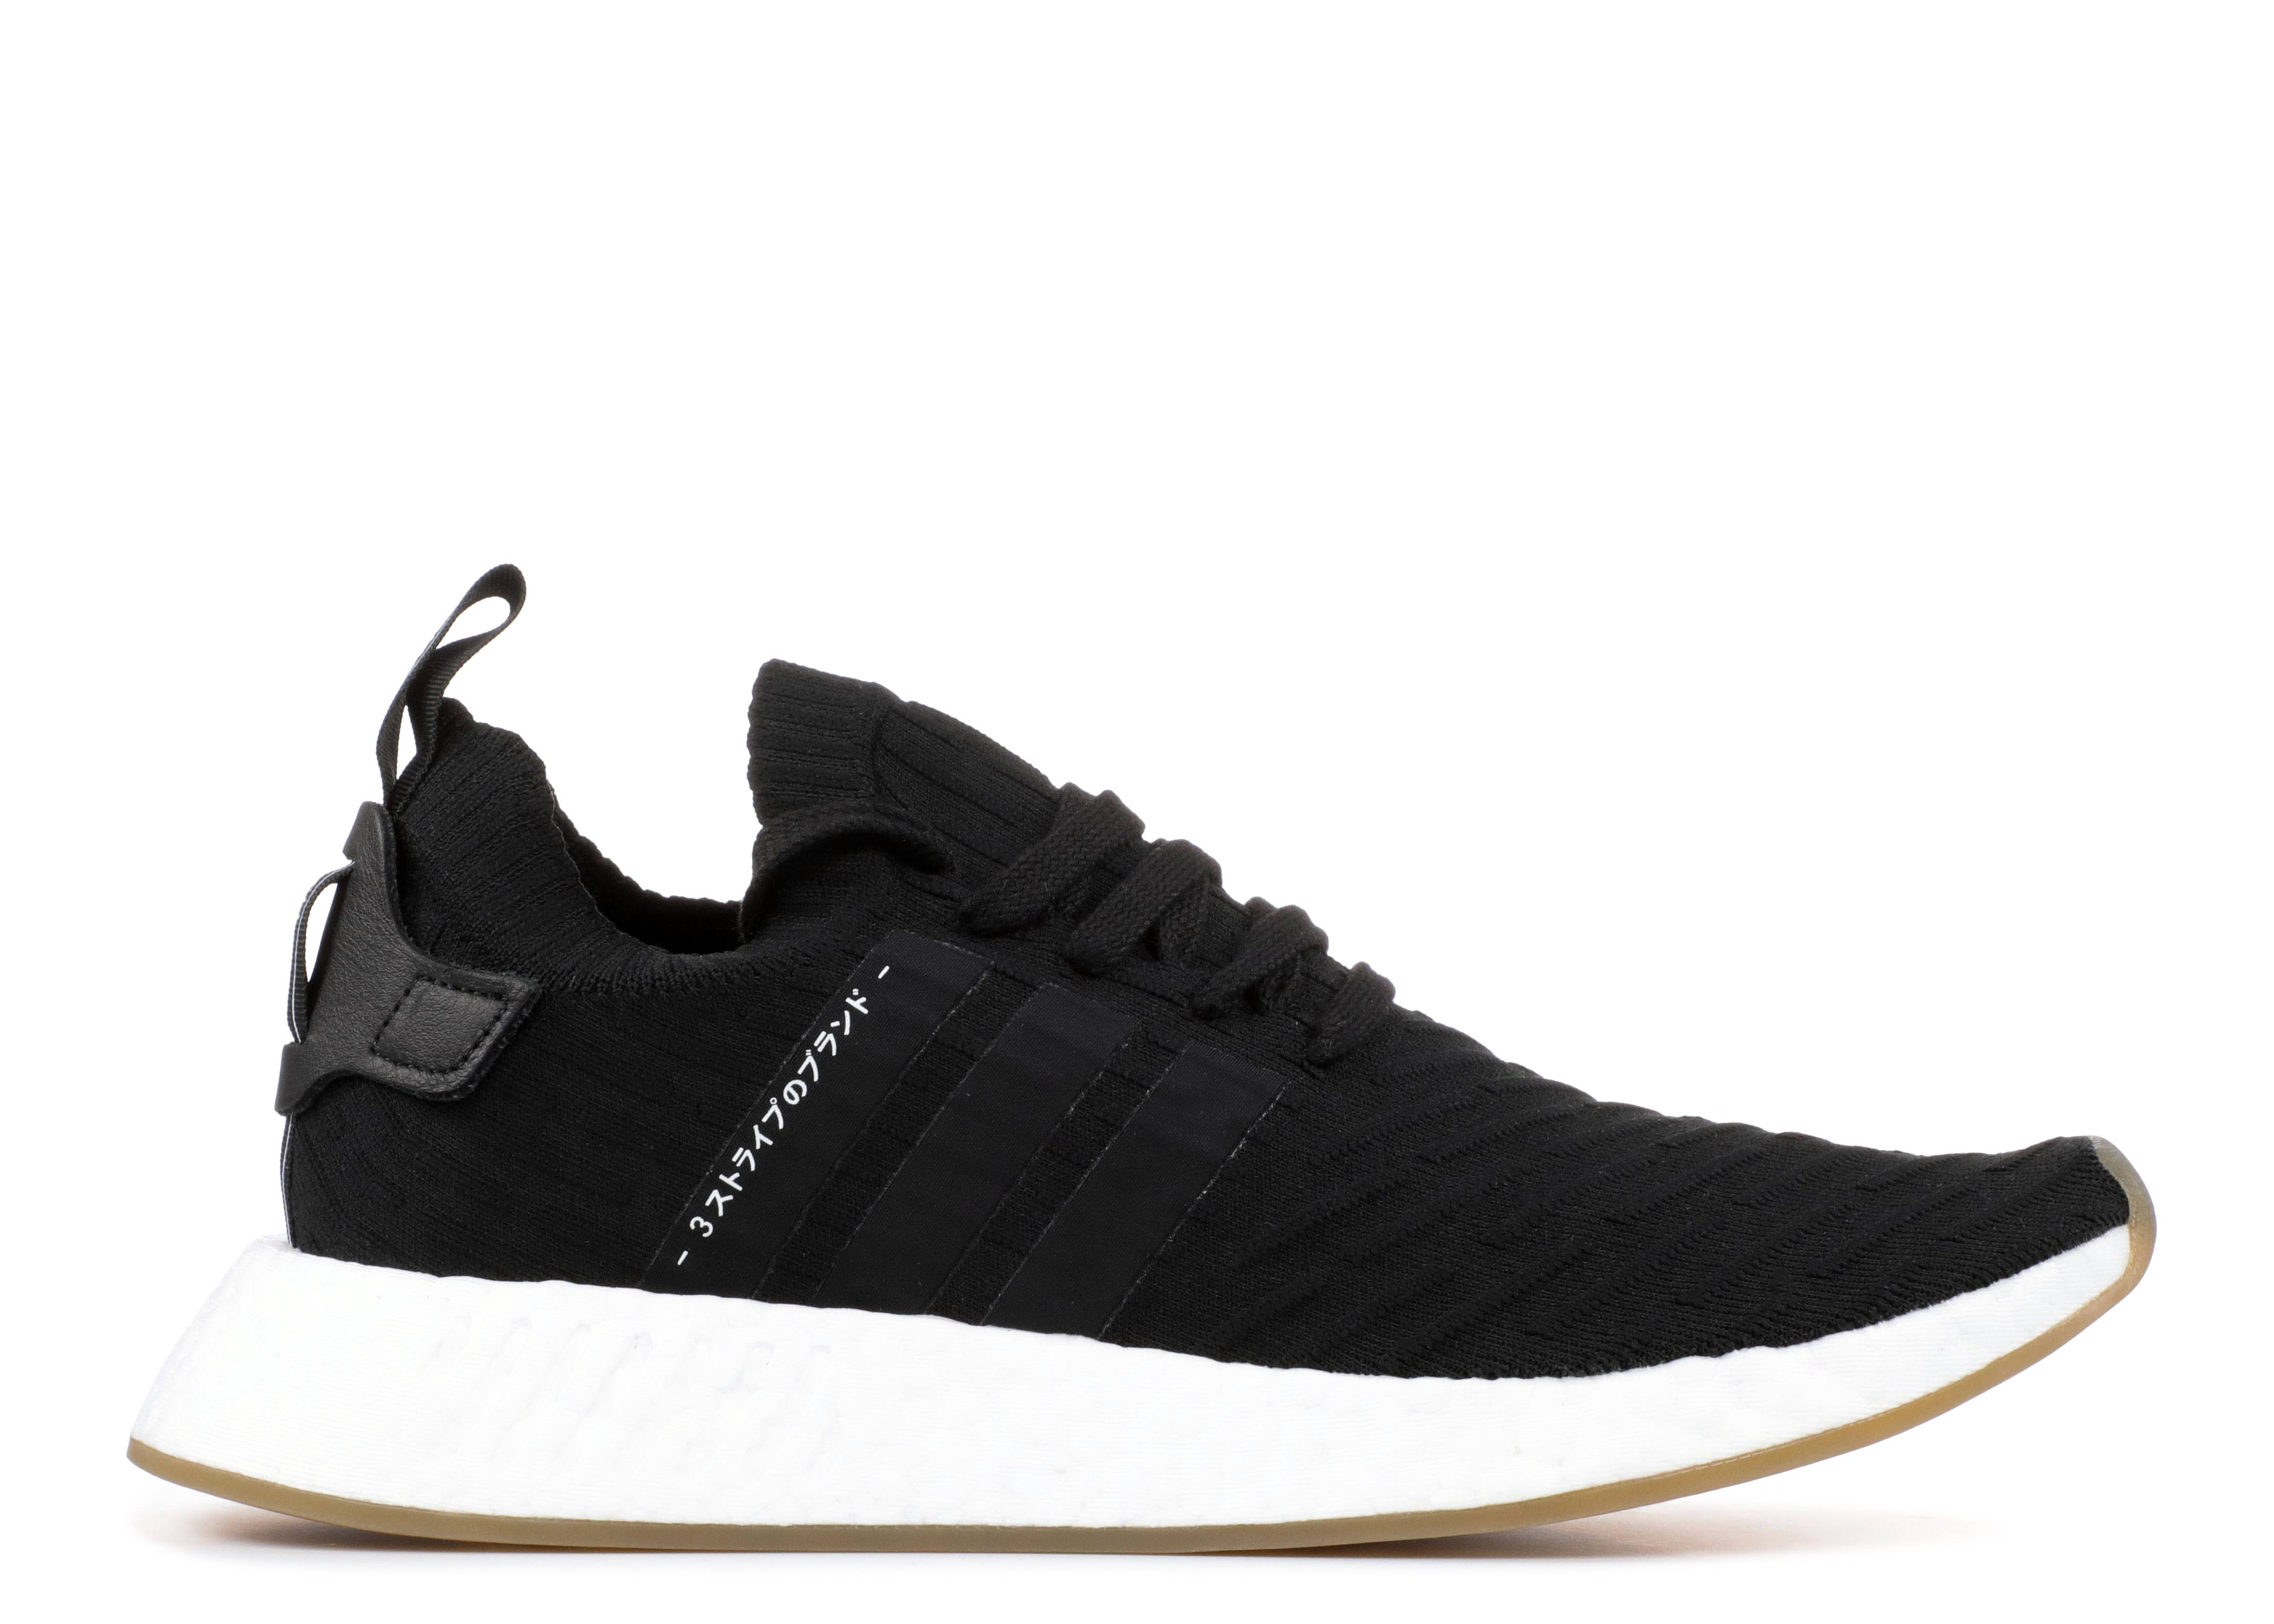 ebc3d95de adidas nmd r2 primeknit black adidas superstar trainers white and ...